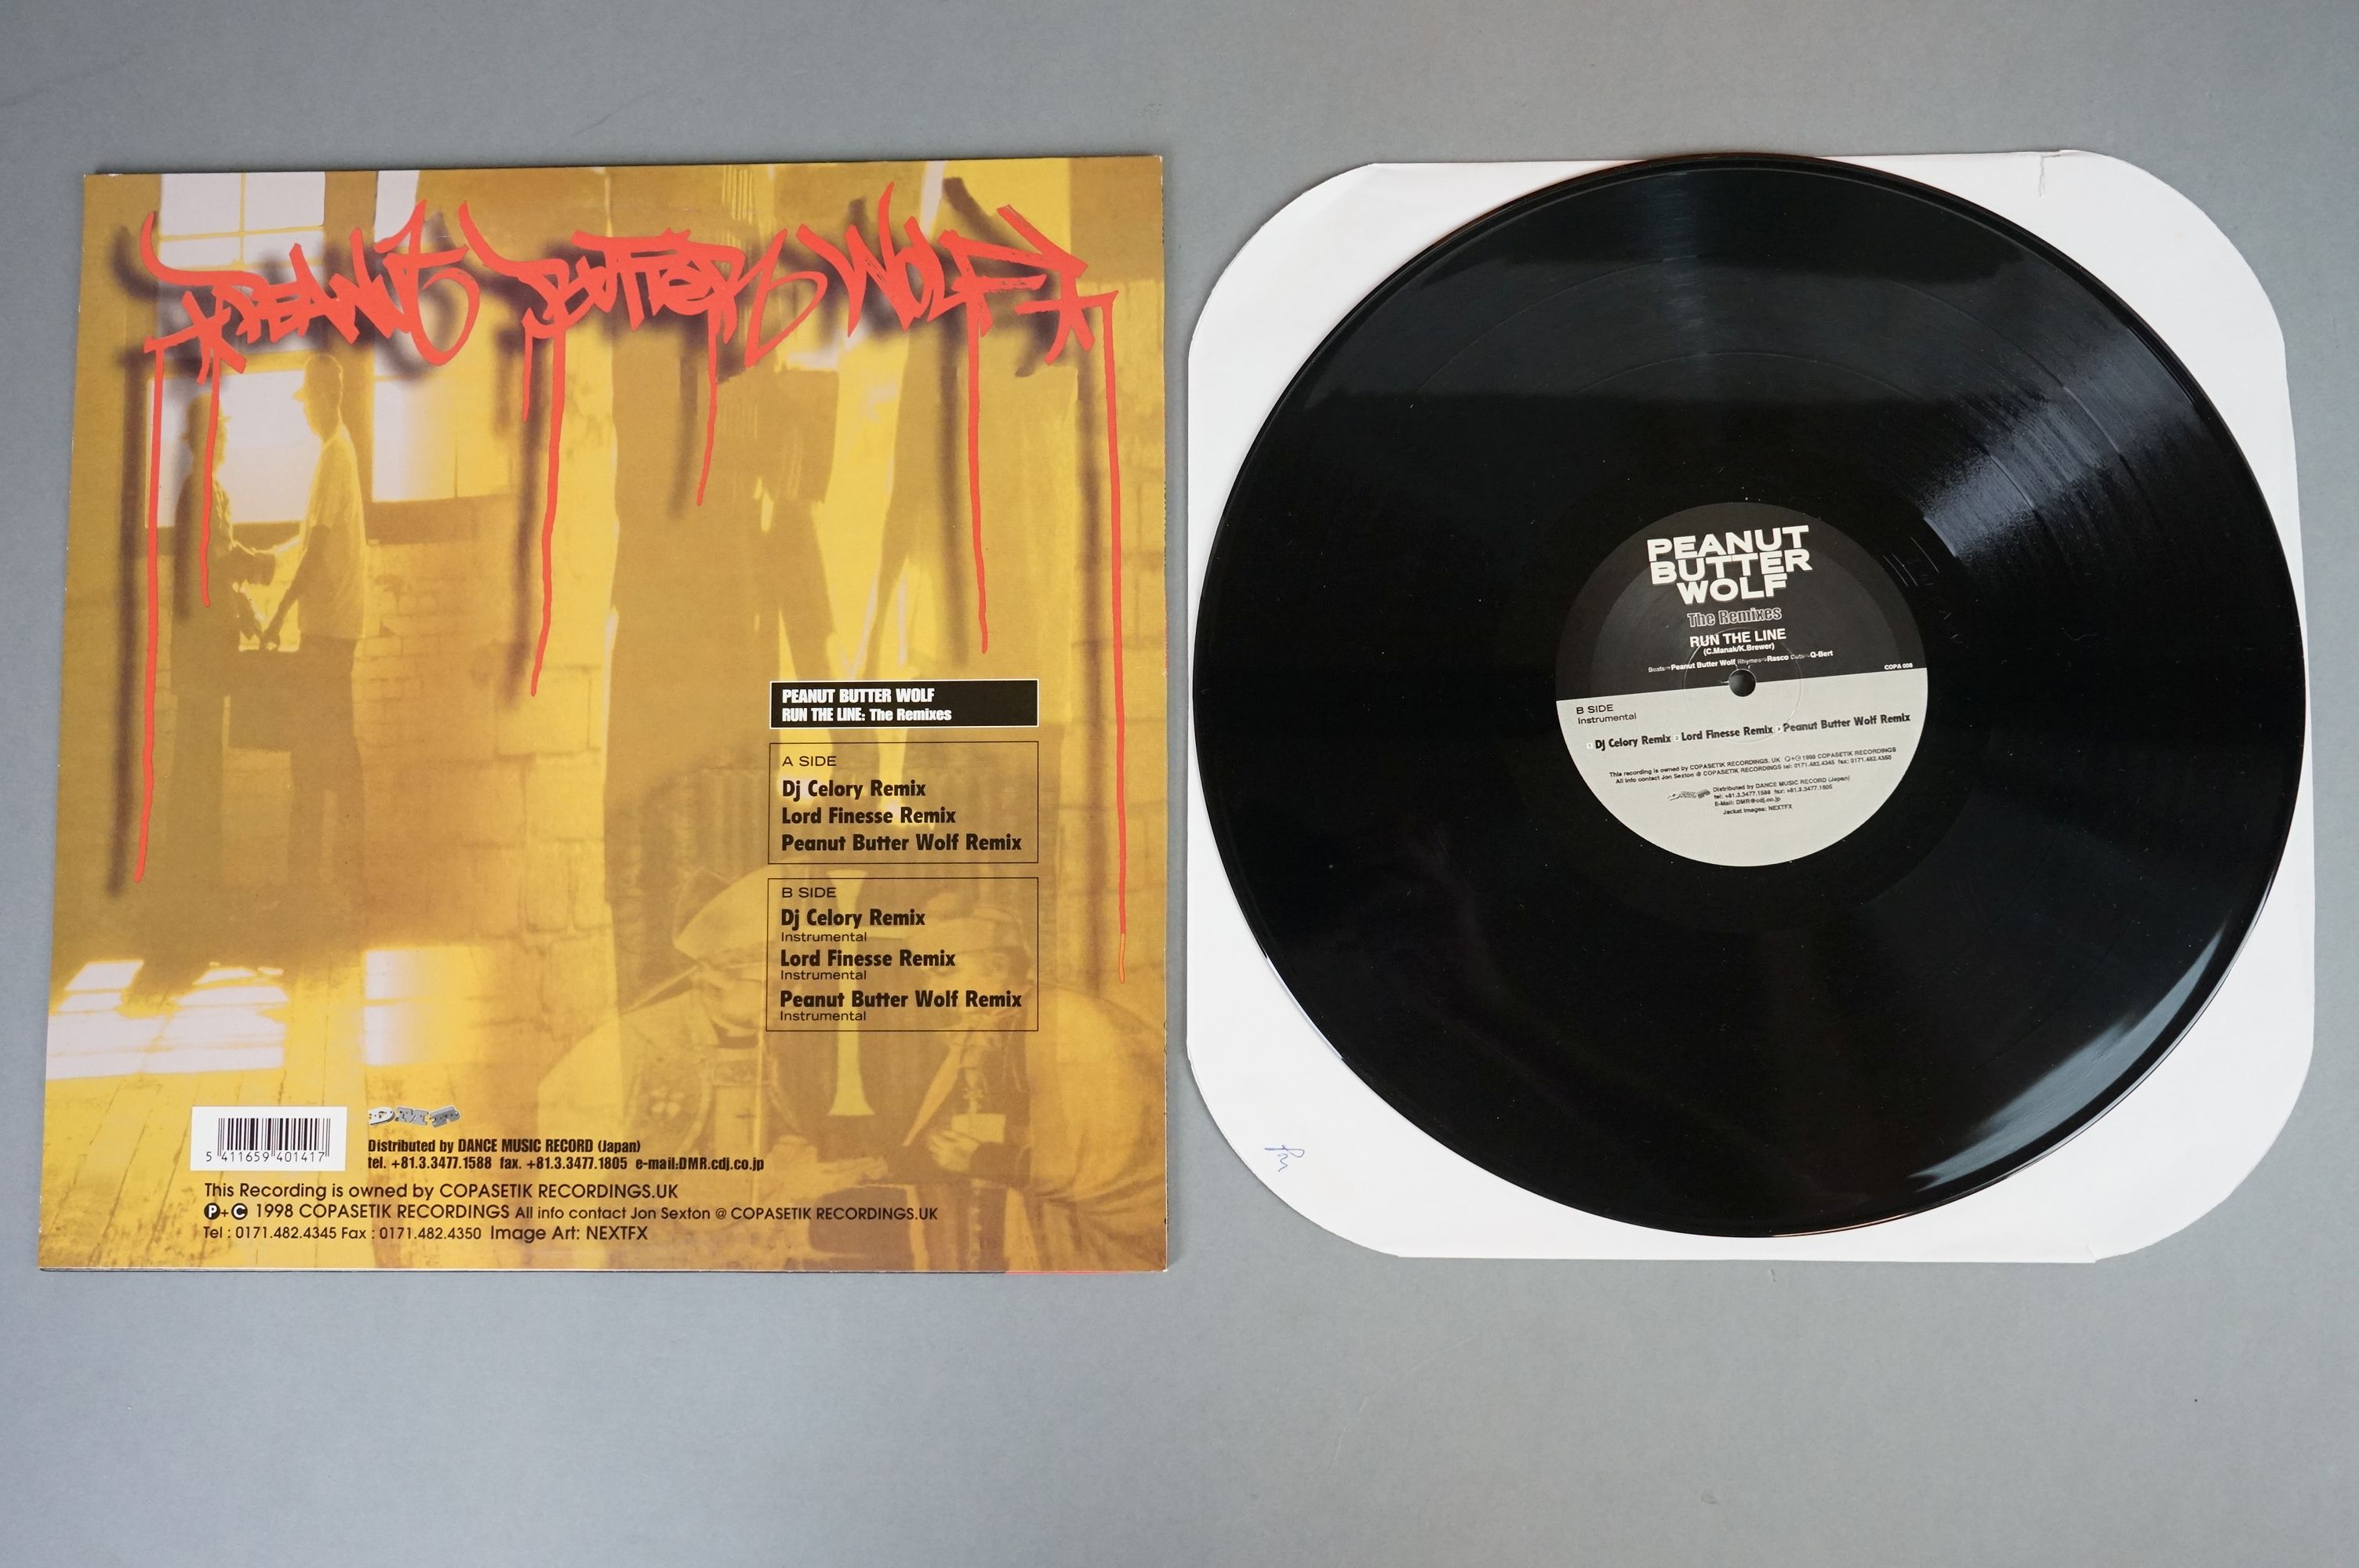 """Vinyl - Slurped Too! 2LP Compilation and 3 x Peanut Butter Wolf 12"""" singles to include Run The - Image 3 of 11"""